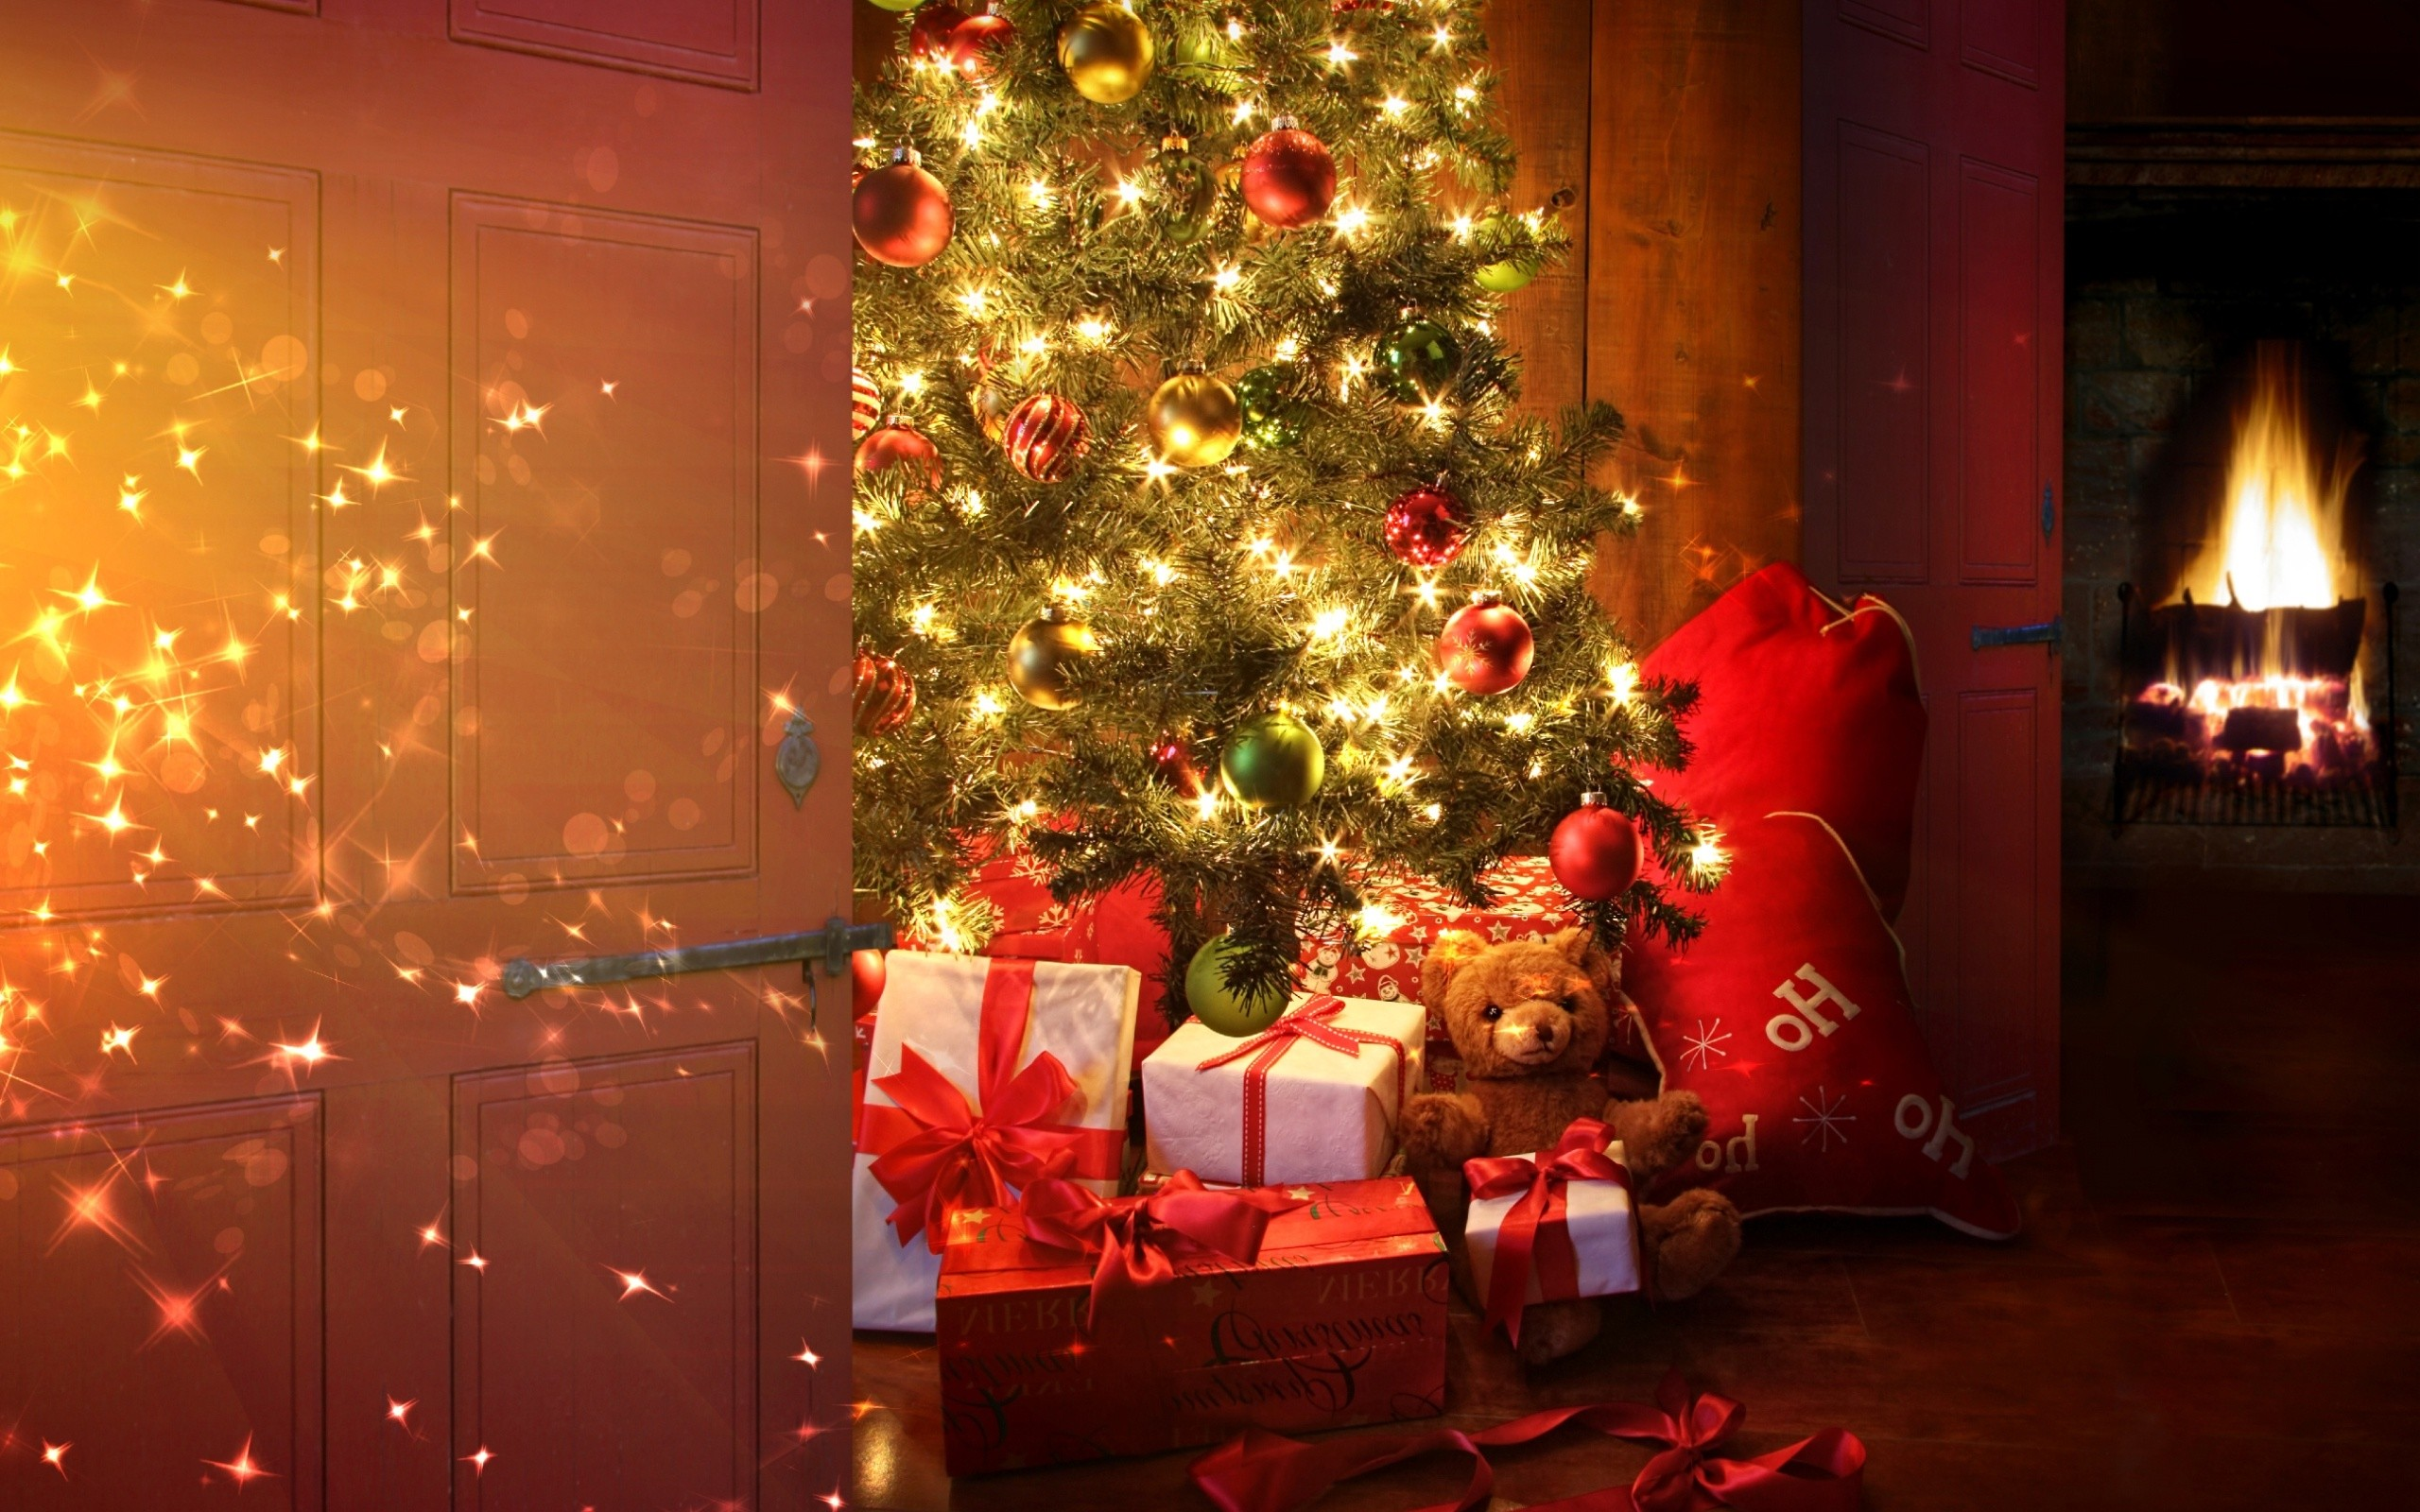 2560x1600 Christmas Tree with Lights and Gifts (click to view)